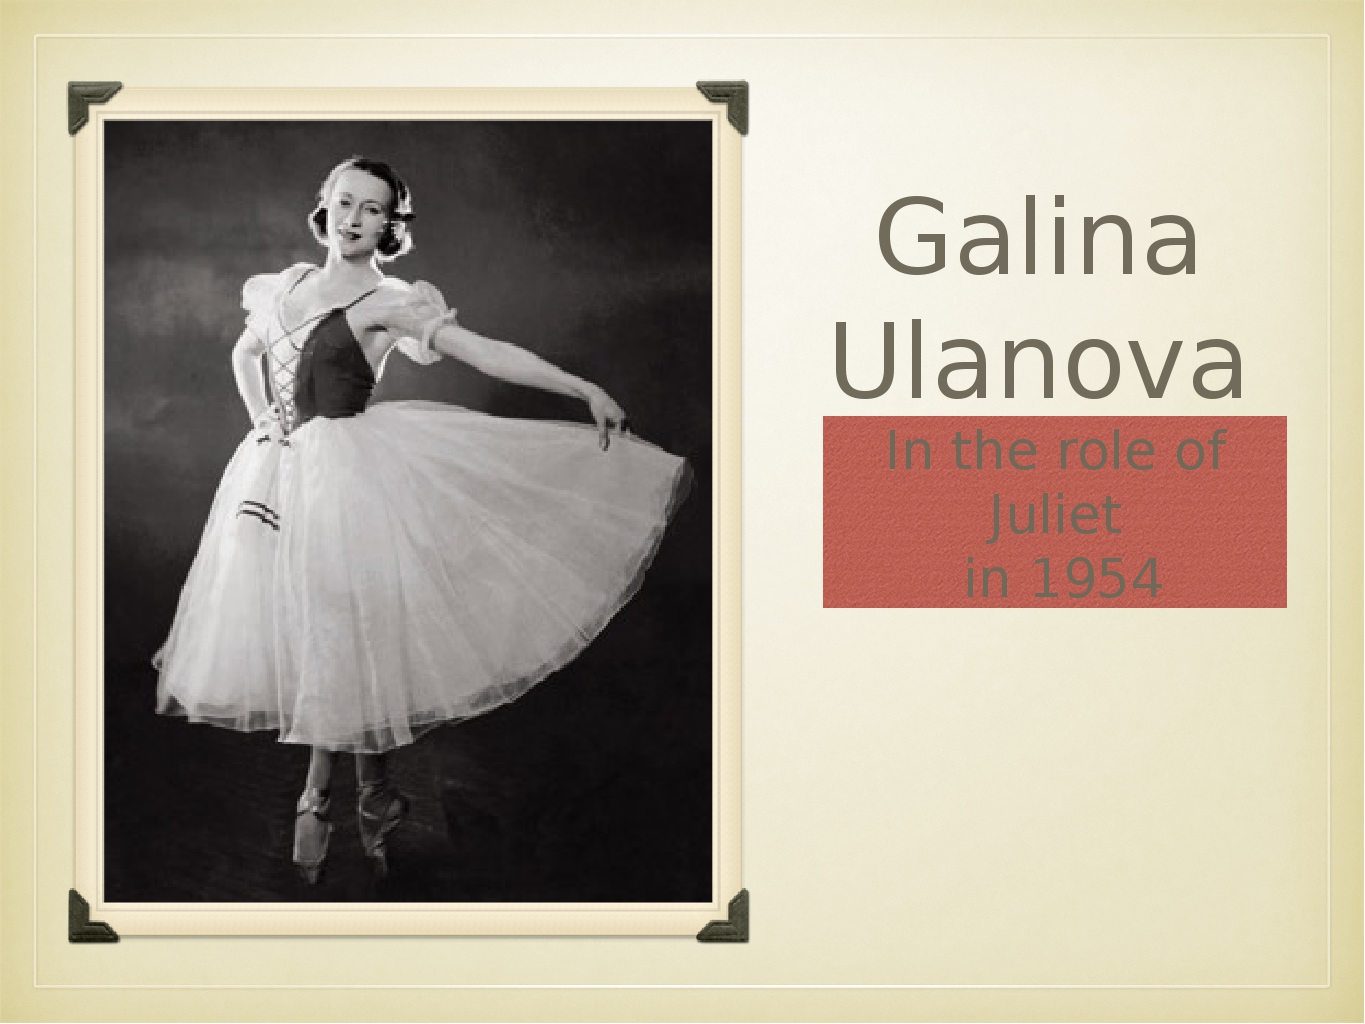 Galina Ulanova In the role of Juliet in 1954